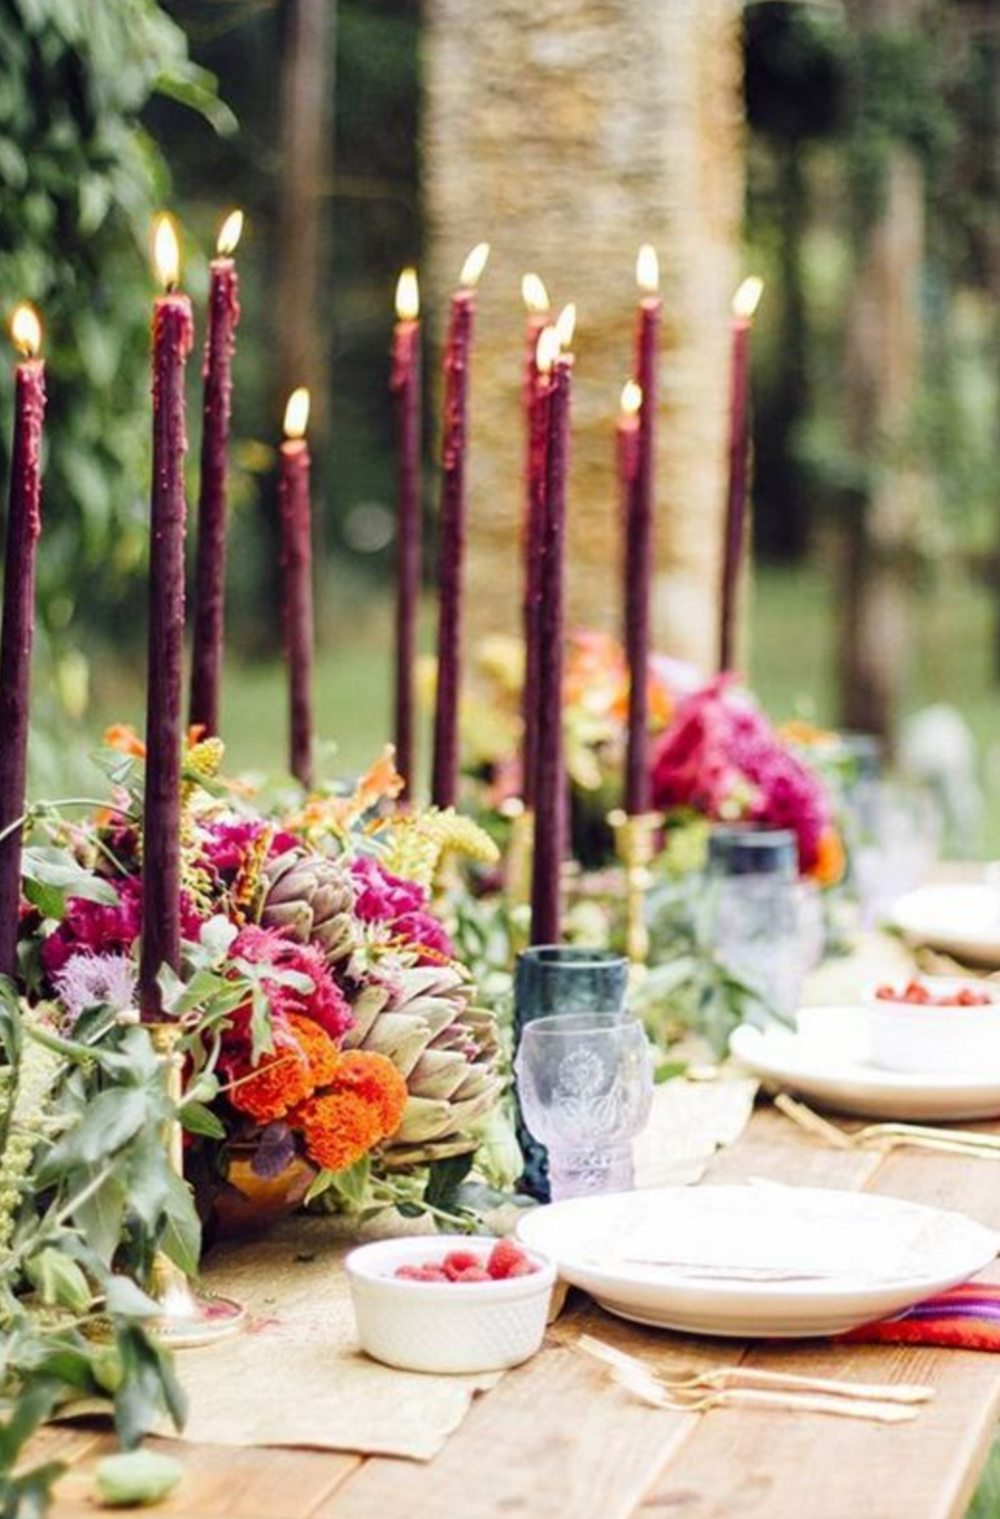 I like the dramatic statement of these purple candles. I think it could be paired with fewer flowers and still make a beautiful table.